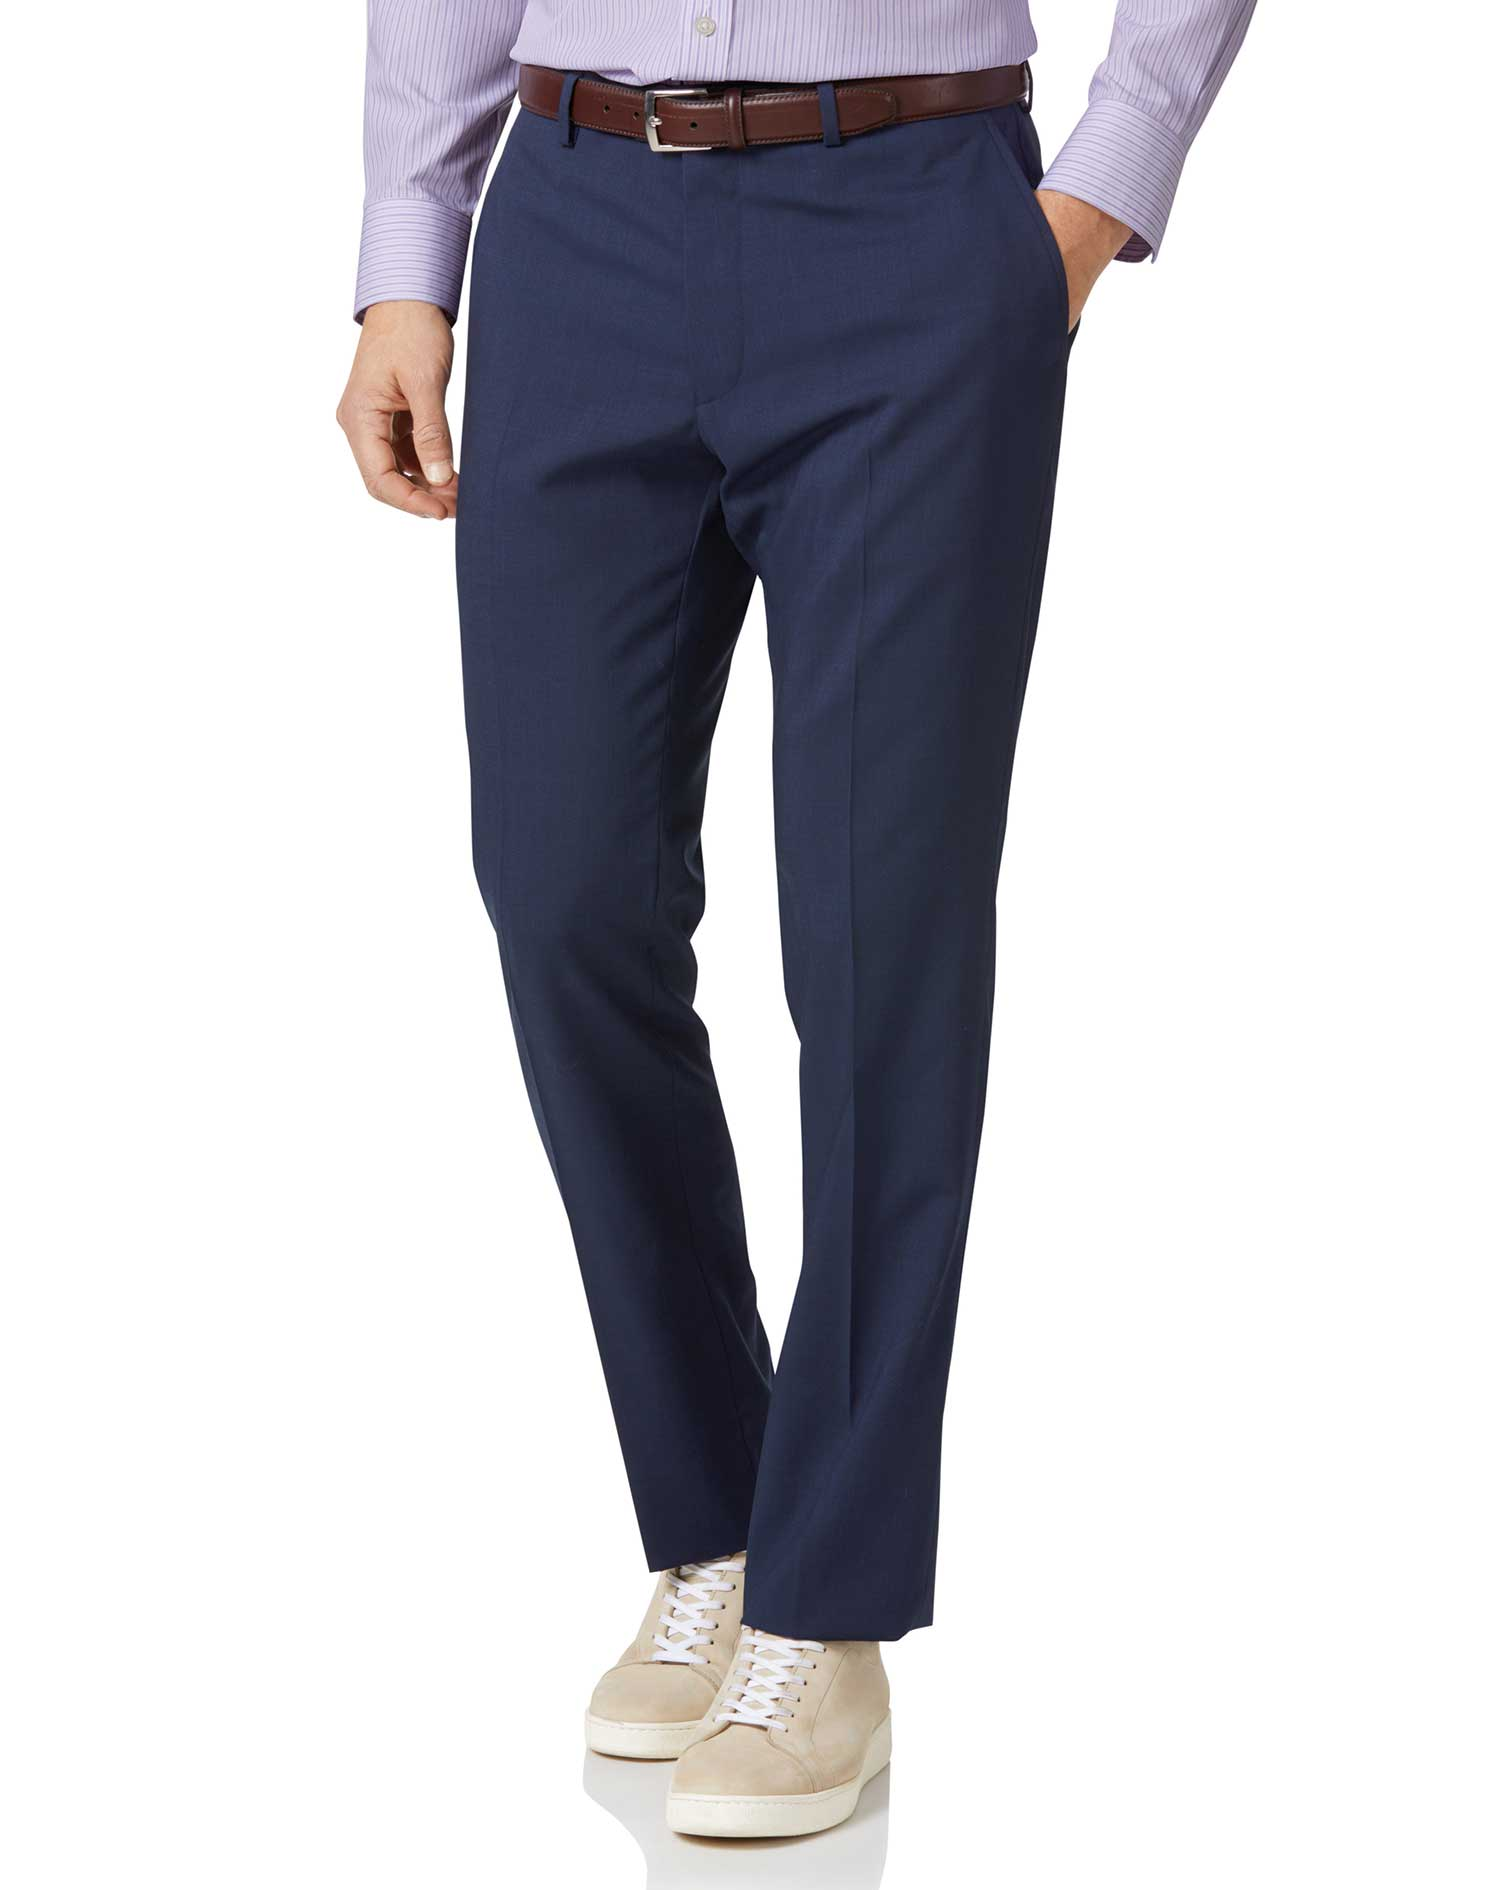 Navy Slim Fit Step Weave Suit Trousers Size W34 L34 by Charles Tyrwhitt